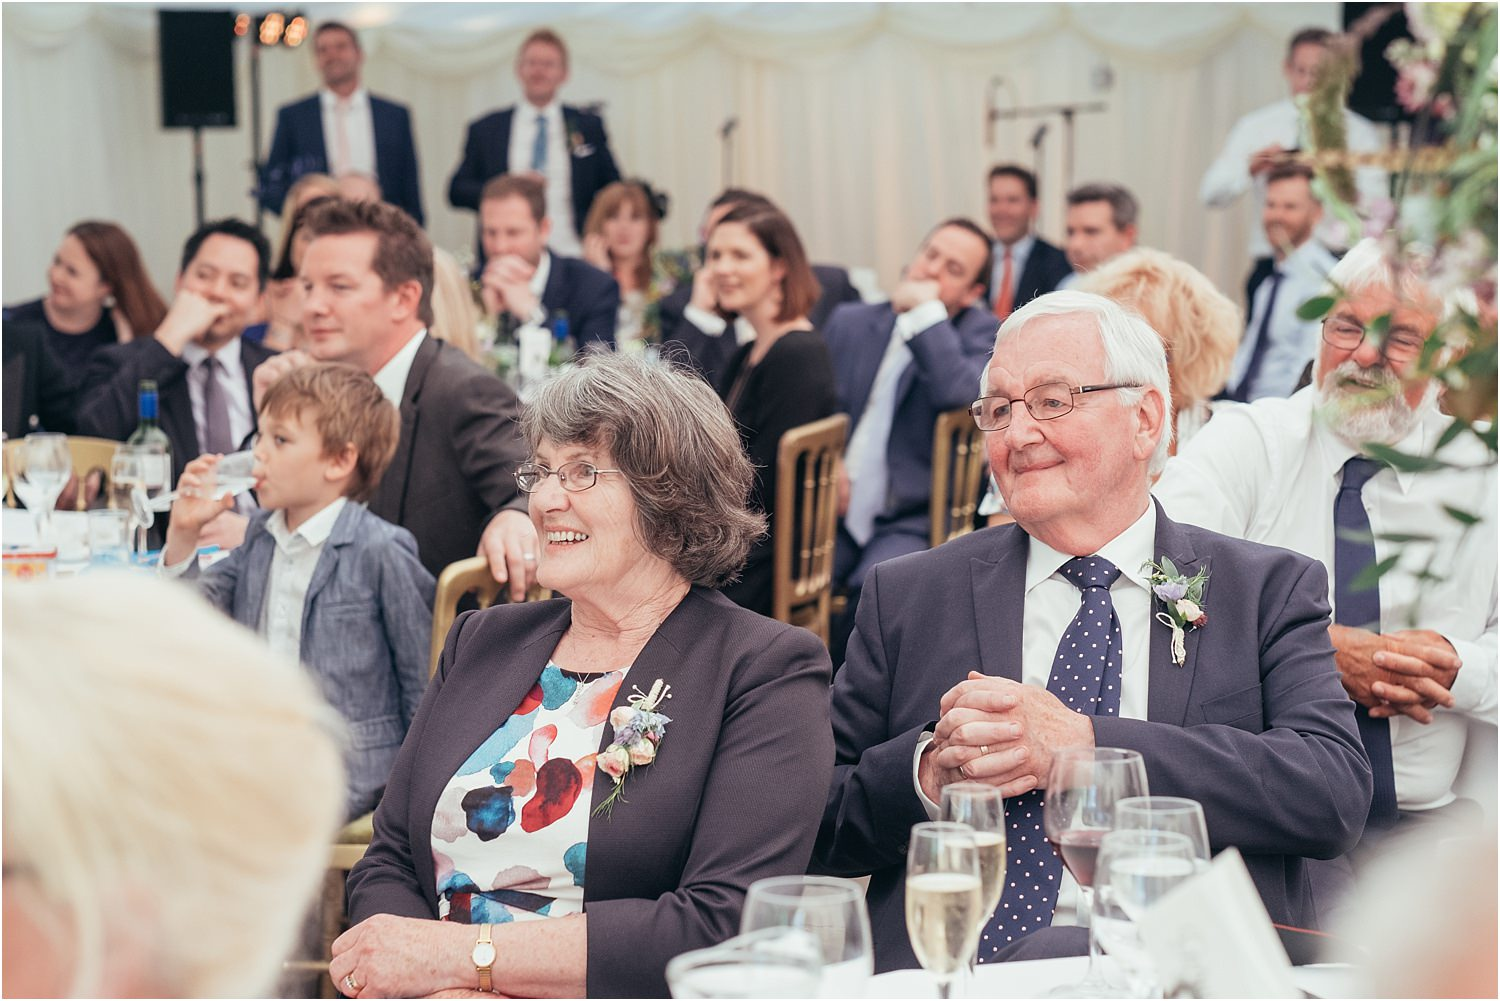 Guests reactions to wedding speeches at Trough of Bowland wedding